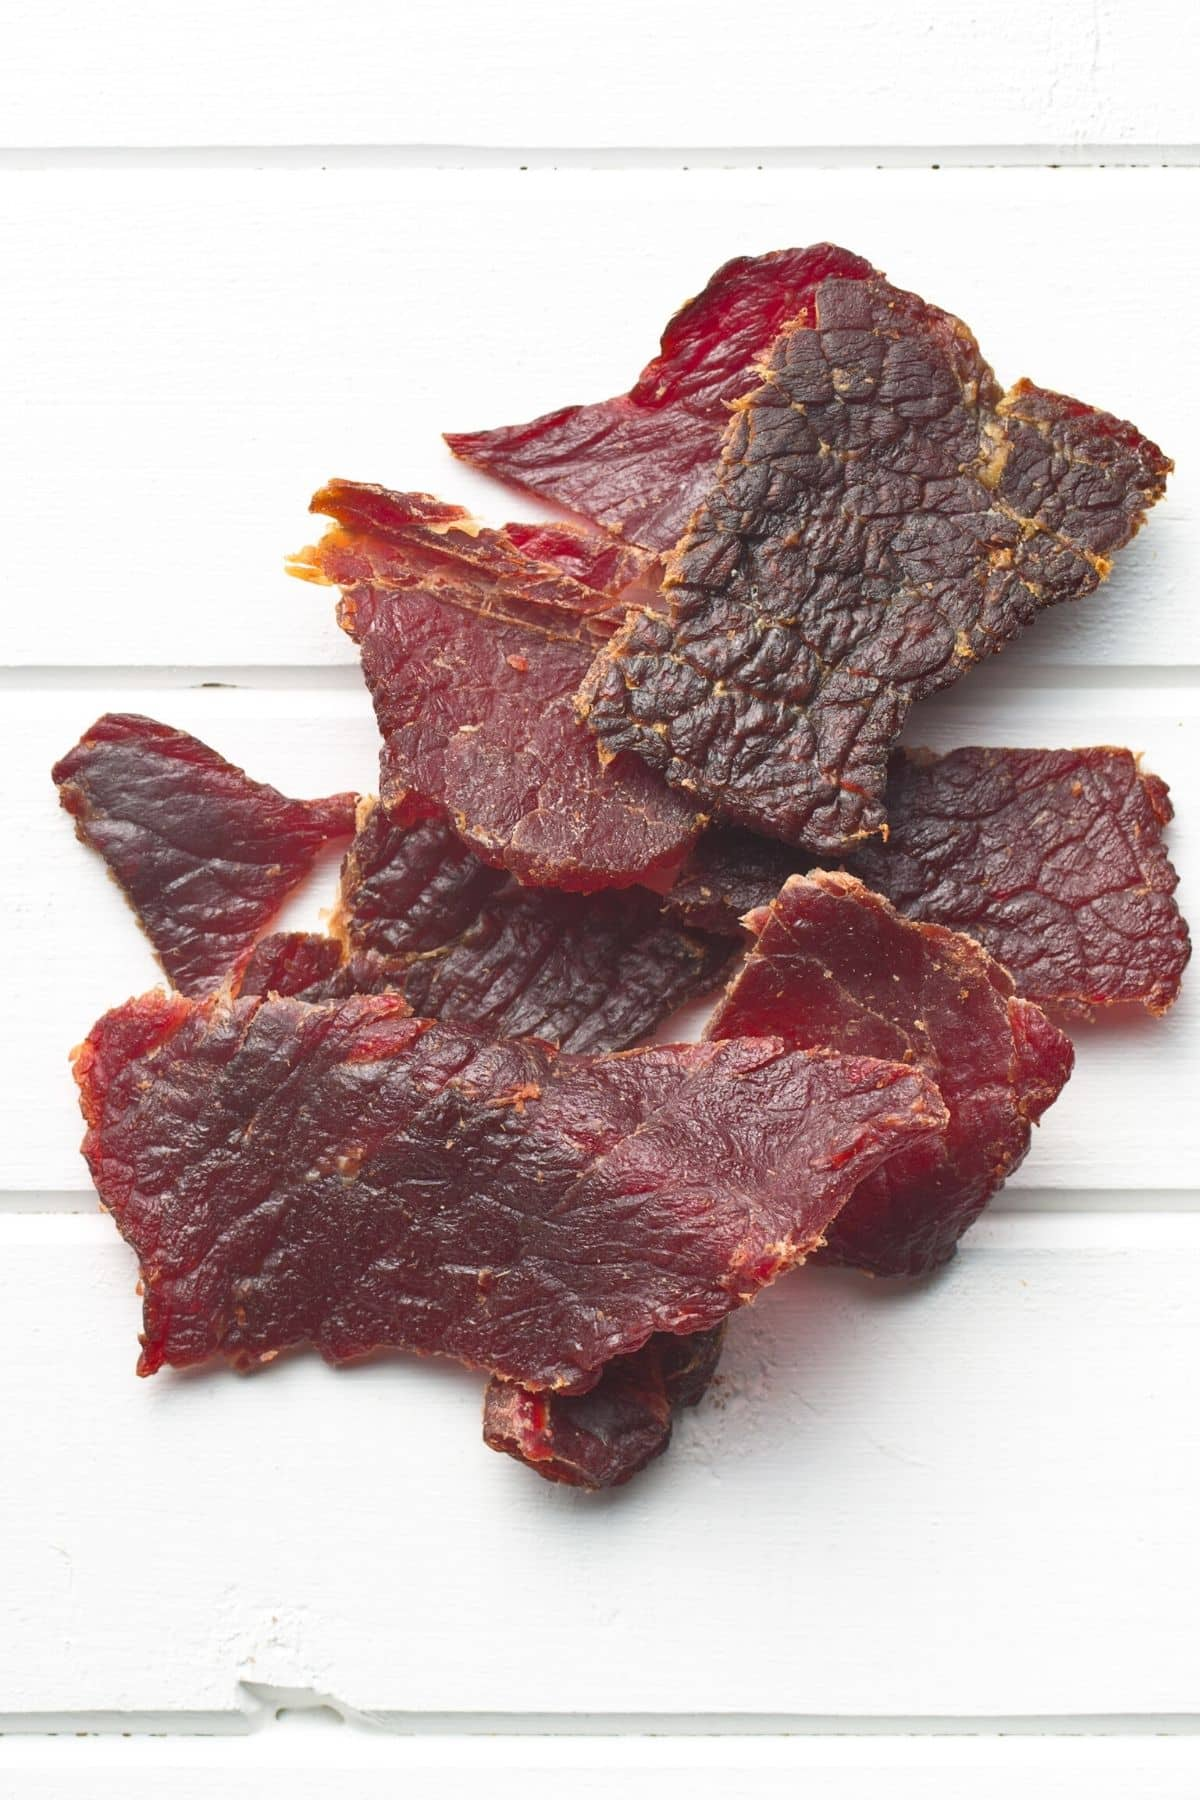 beef jerky on a tabletop